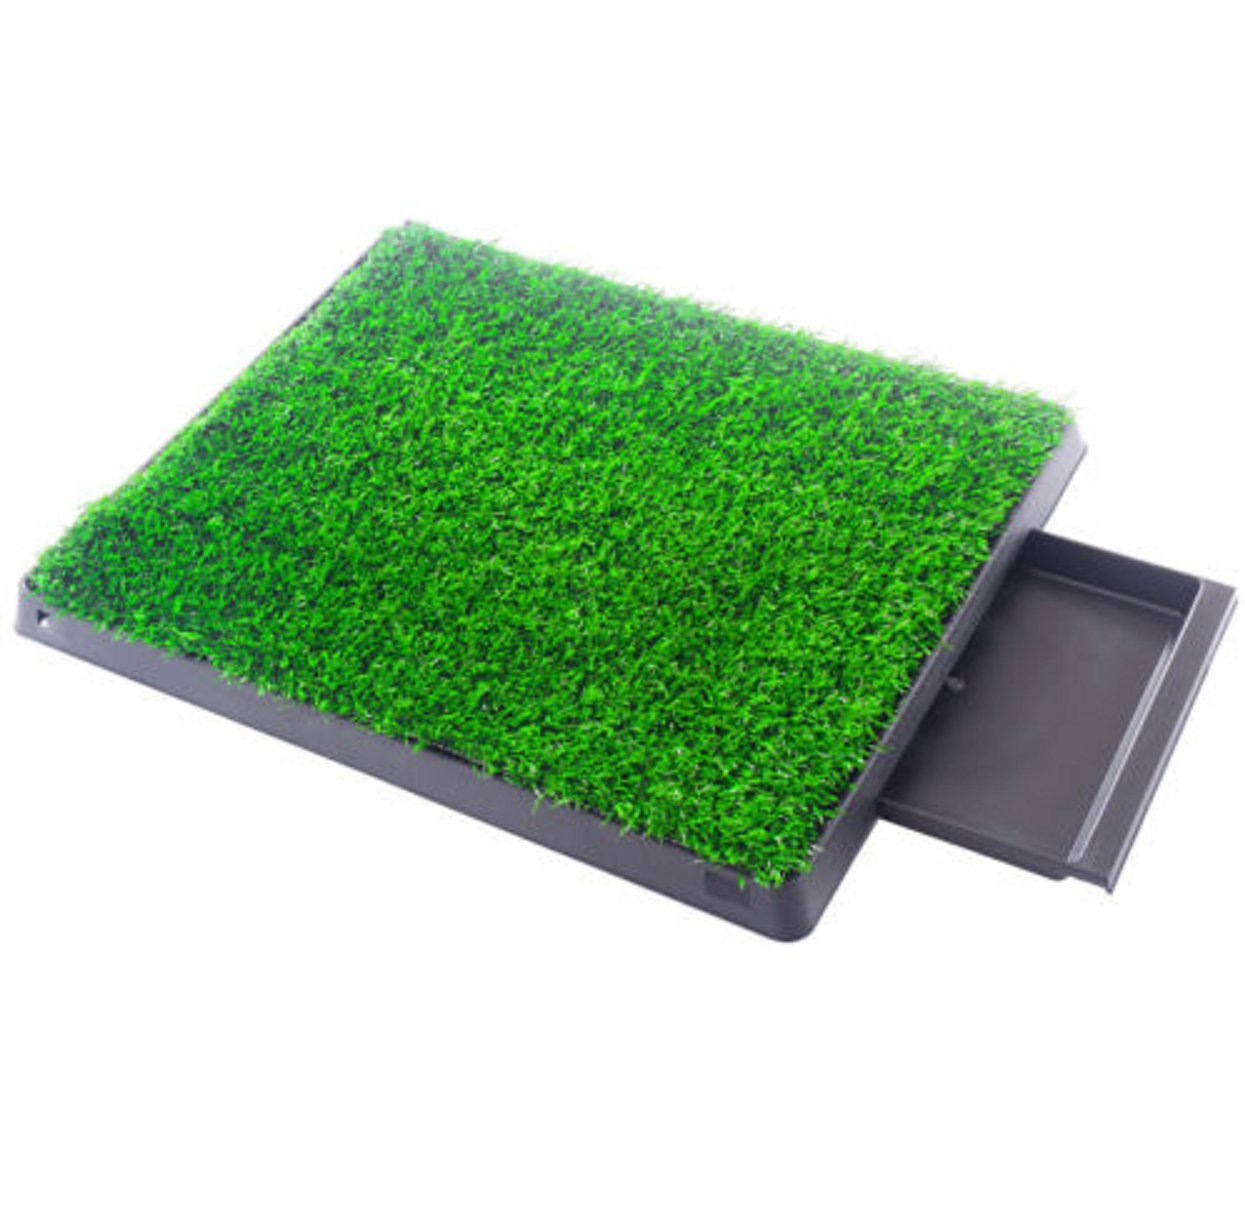 Pet Potty Grass Pads Training Indoor Replacement Outdoor Park Toilet Deluxe